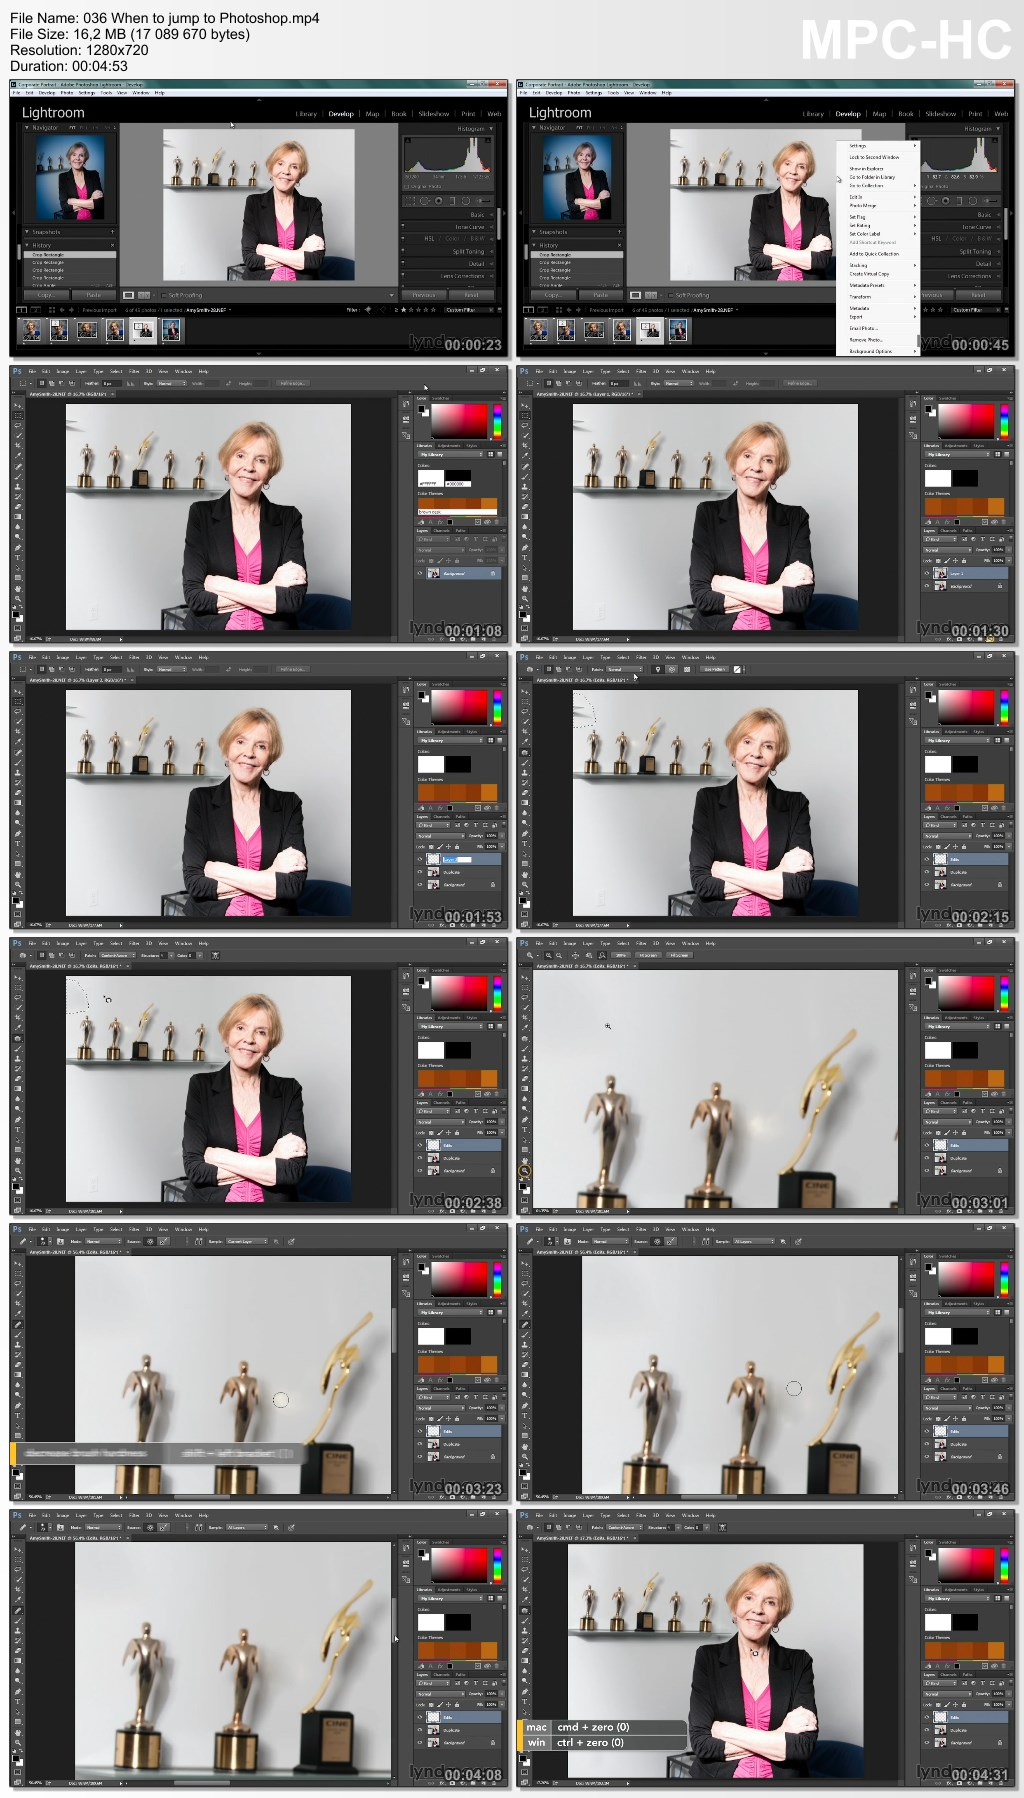 Lynda - Shooting Effective Business Portraits